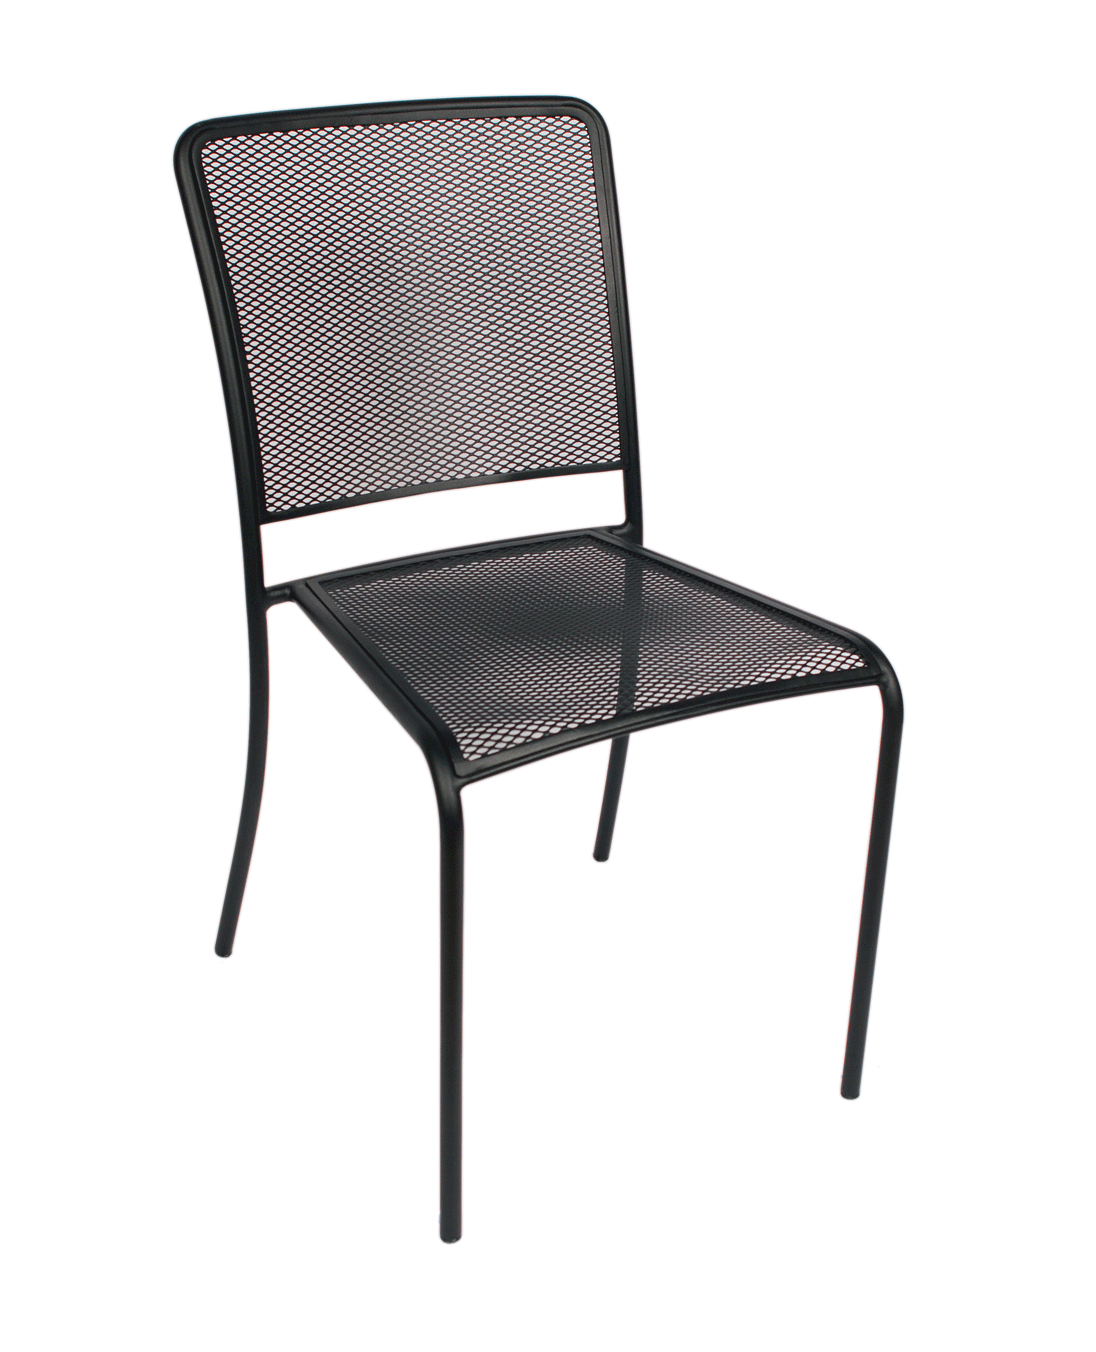 Outdoor Stackable Chairs Chesapeake Indoor Outdoor Stackable Side Chairs